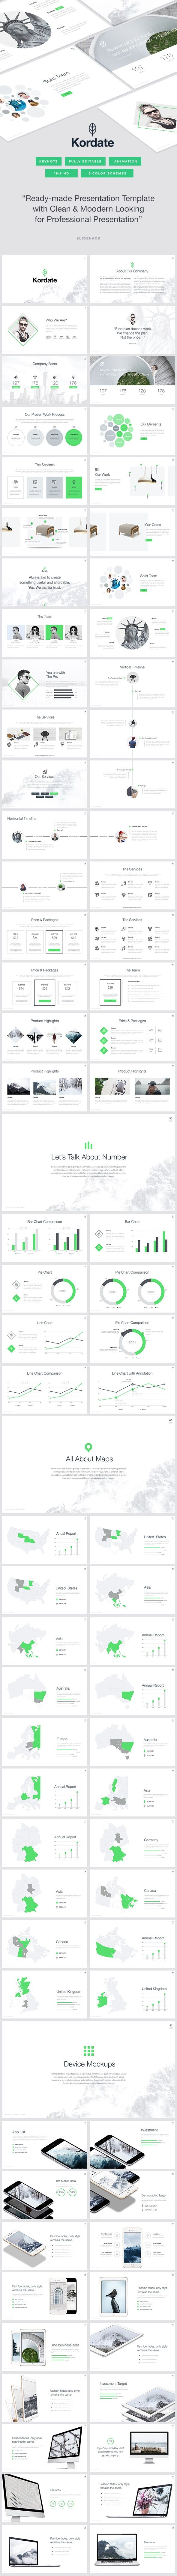 Kordate  Clean & Professional Keynote Template — Keynote KEY #annual report • Download ➝ https://graphicriver.net/item/kordate-clean-amp-professional-keynote-template/19233663?ref=pxcr